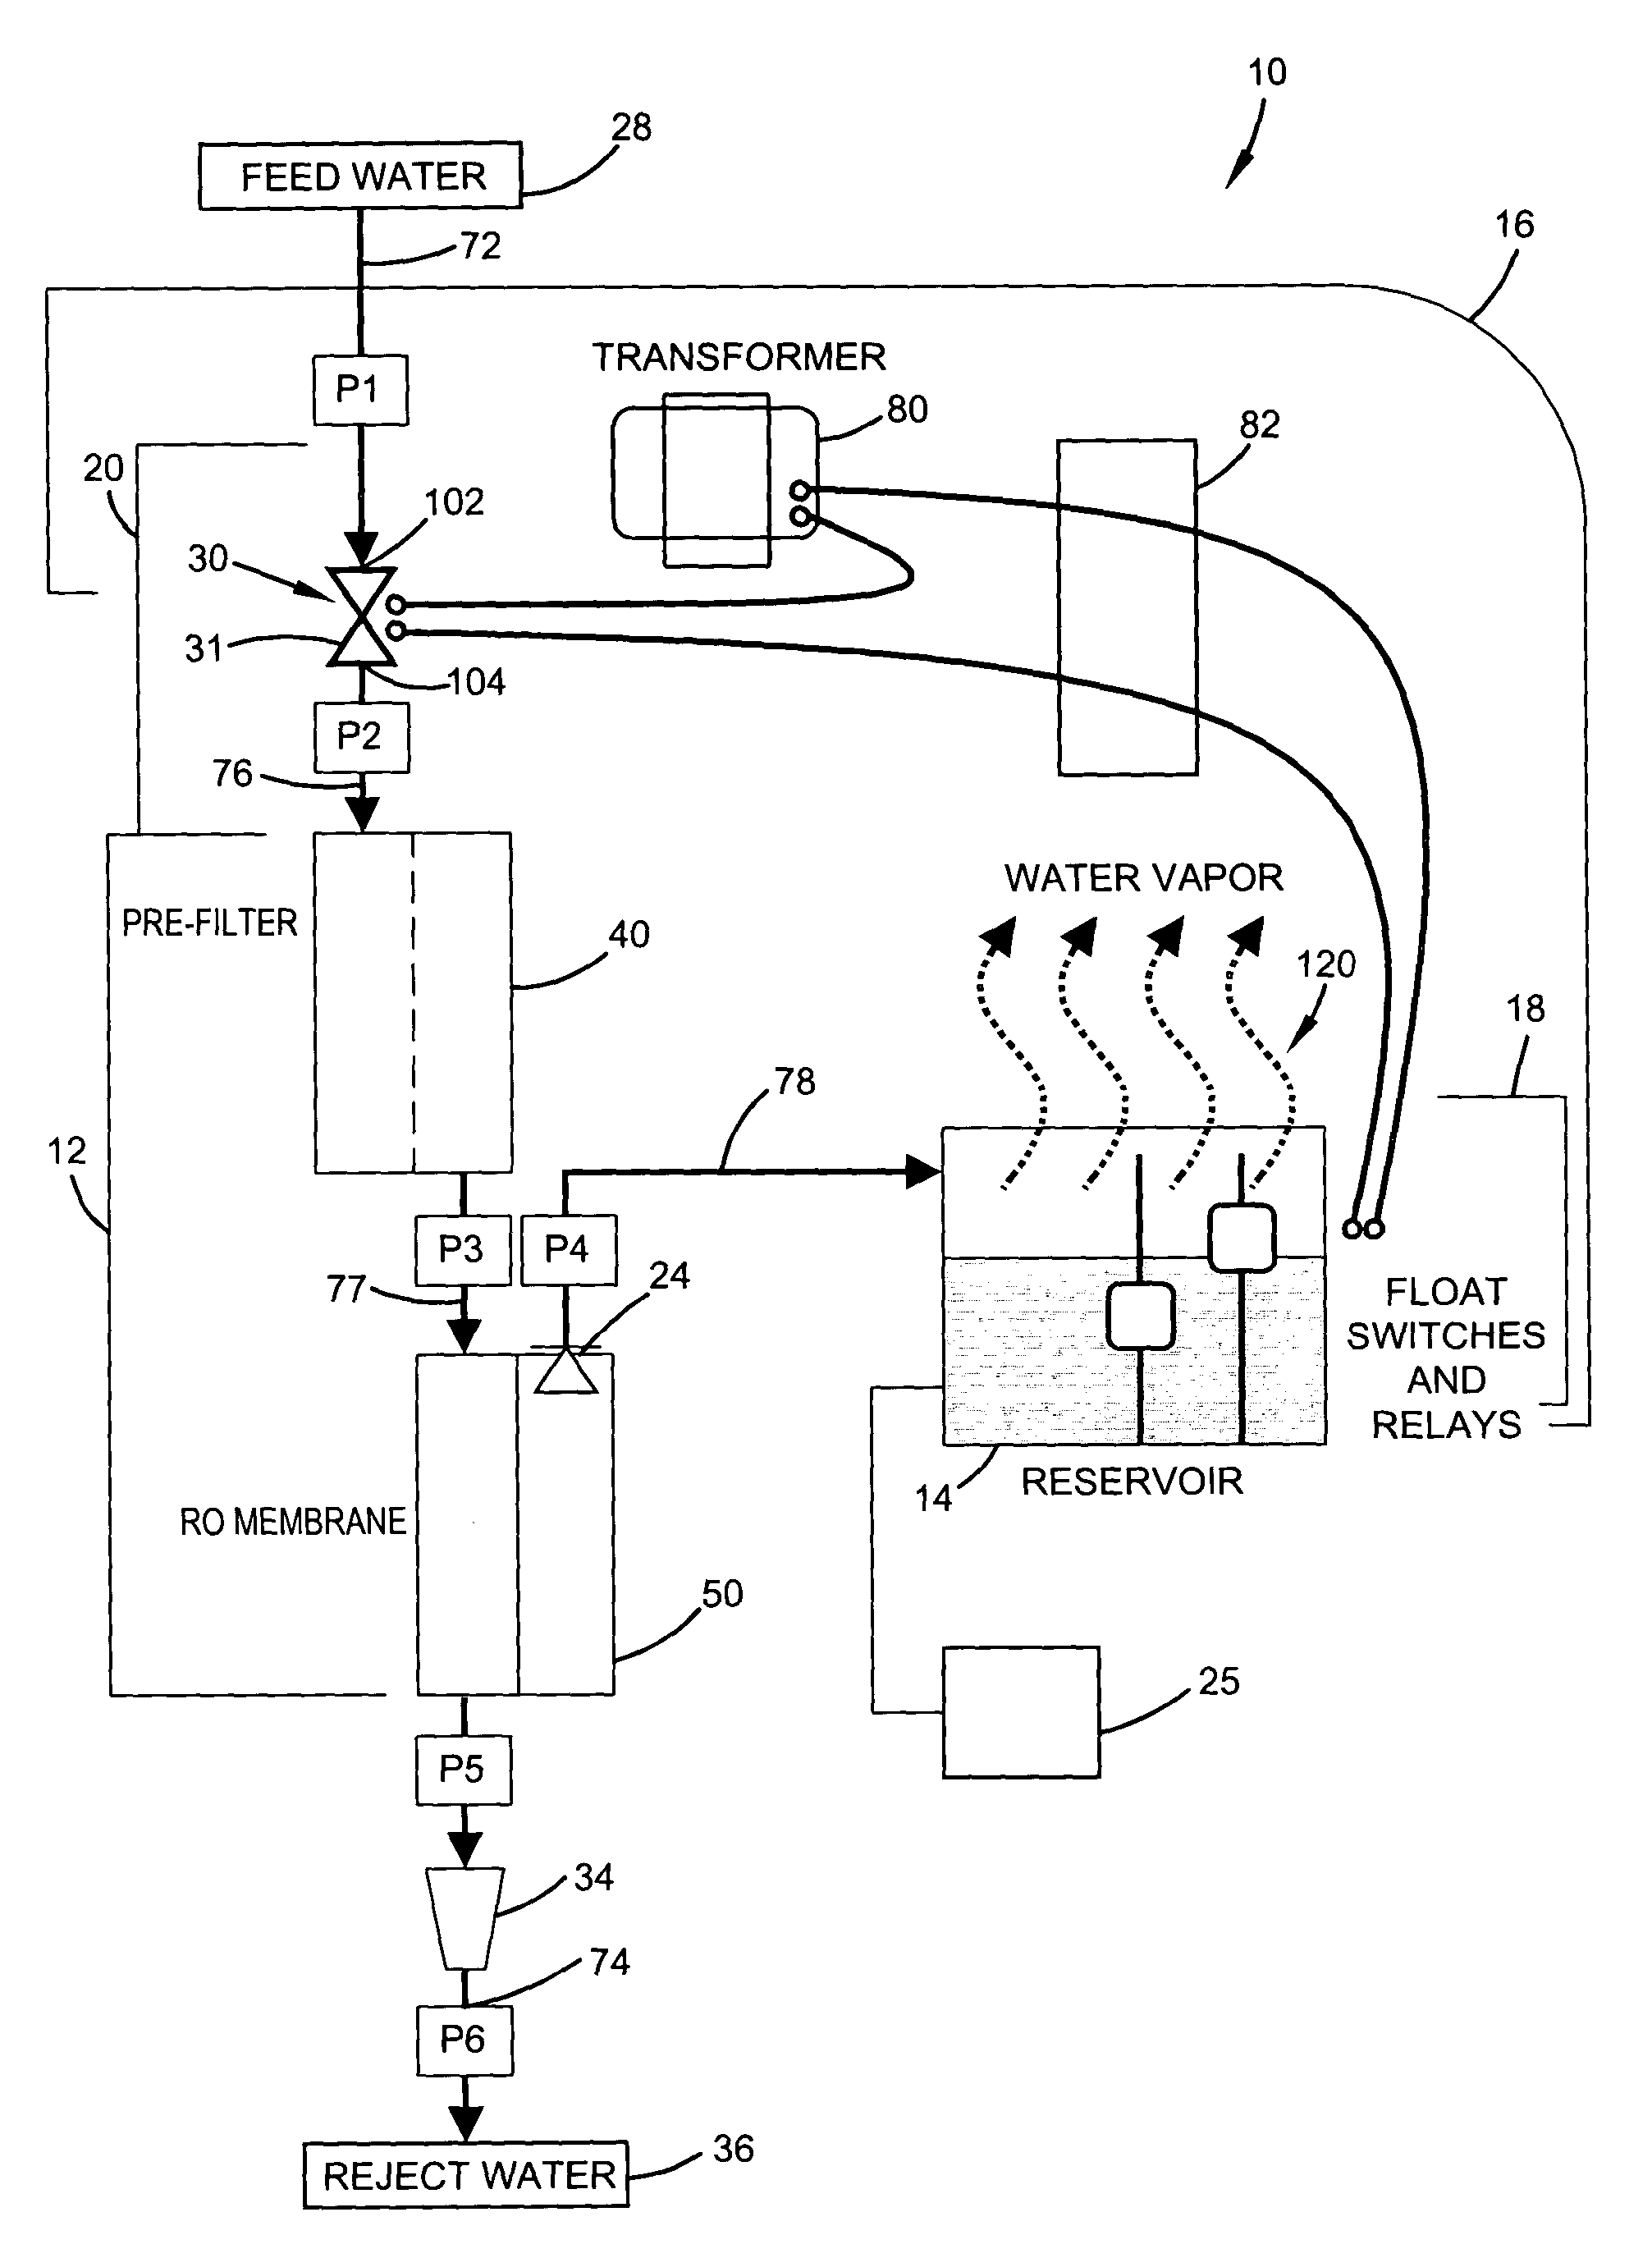 humidifier with reverse osmosis filter on honeywell humidifier Current Transformer Meter Wiring Diagram patent us7066452 humidifier with reverse osmosis filter humidifier with reverse osmosis filter on honeywell humidifier wiring